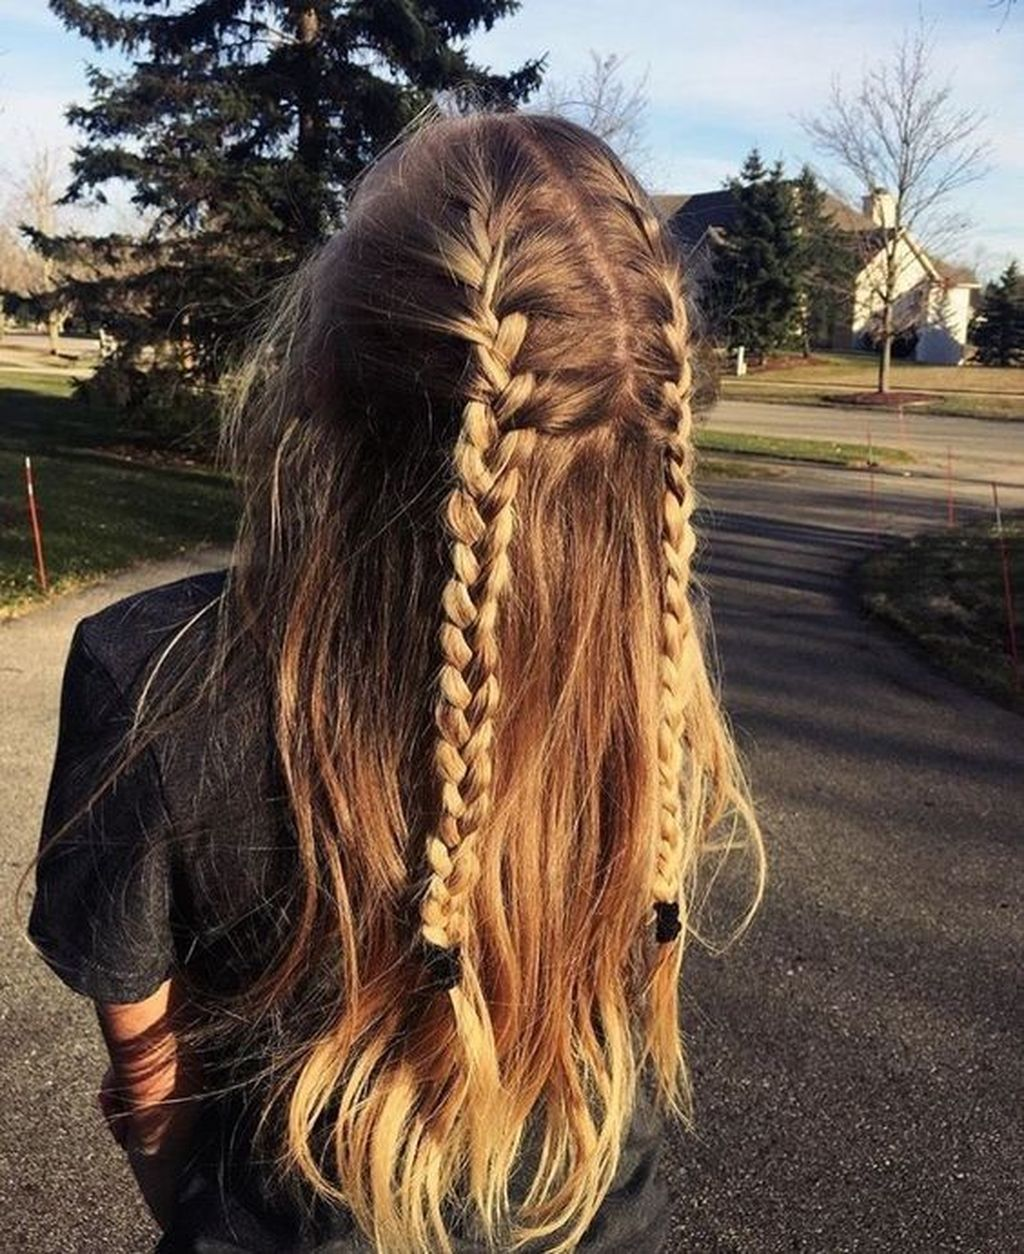 Pin By Lara On Appearance Long Hair Styles Hair Styles Easy Hairstyles For Long Hair